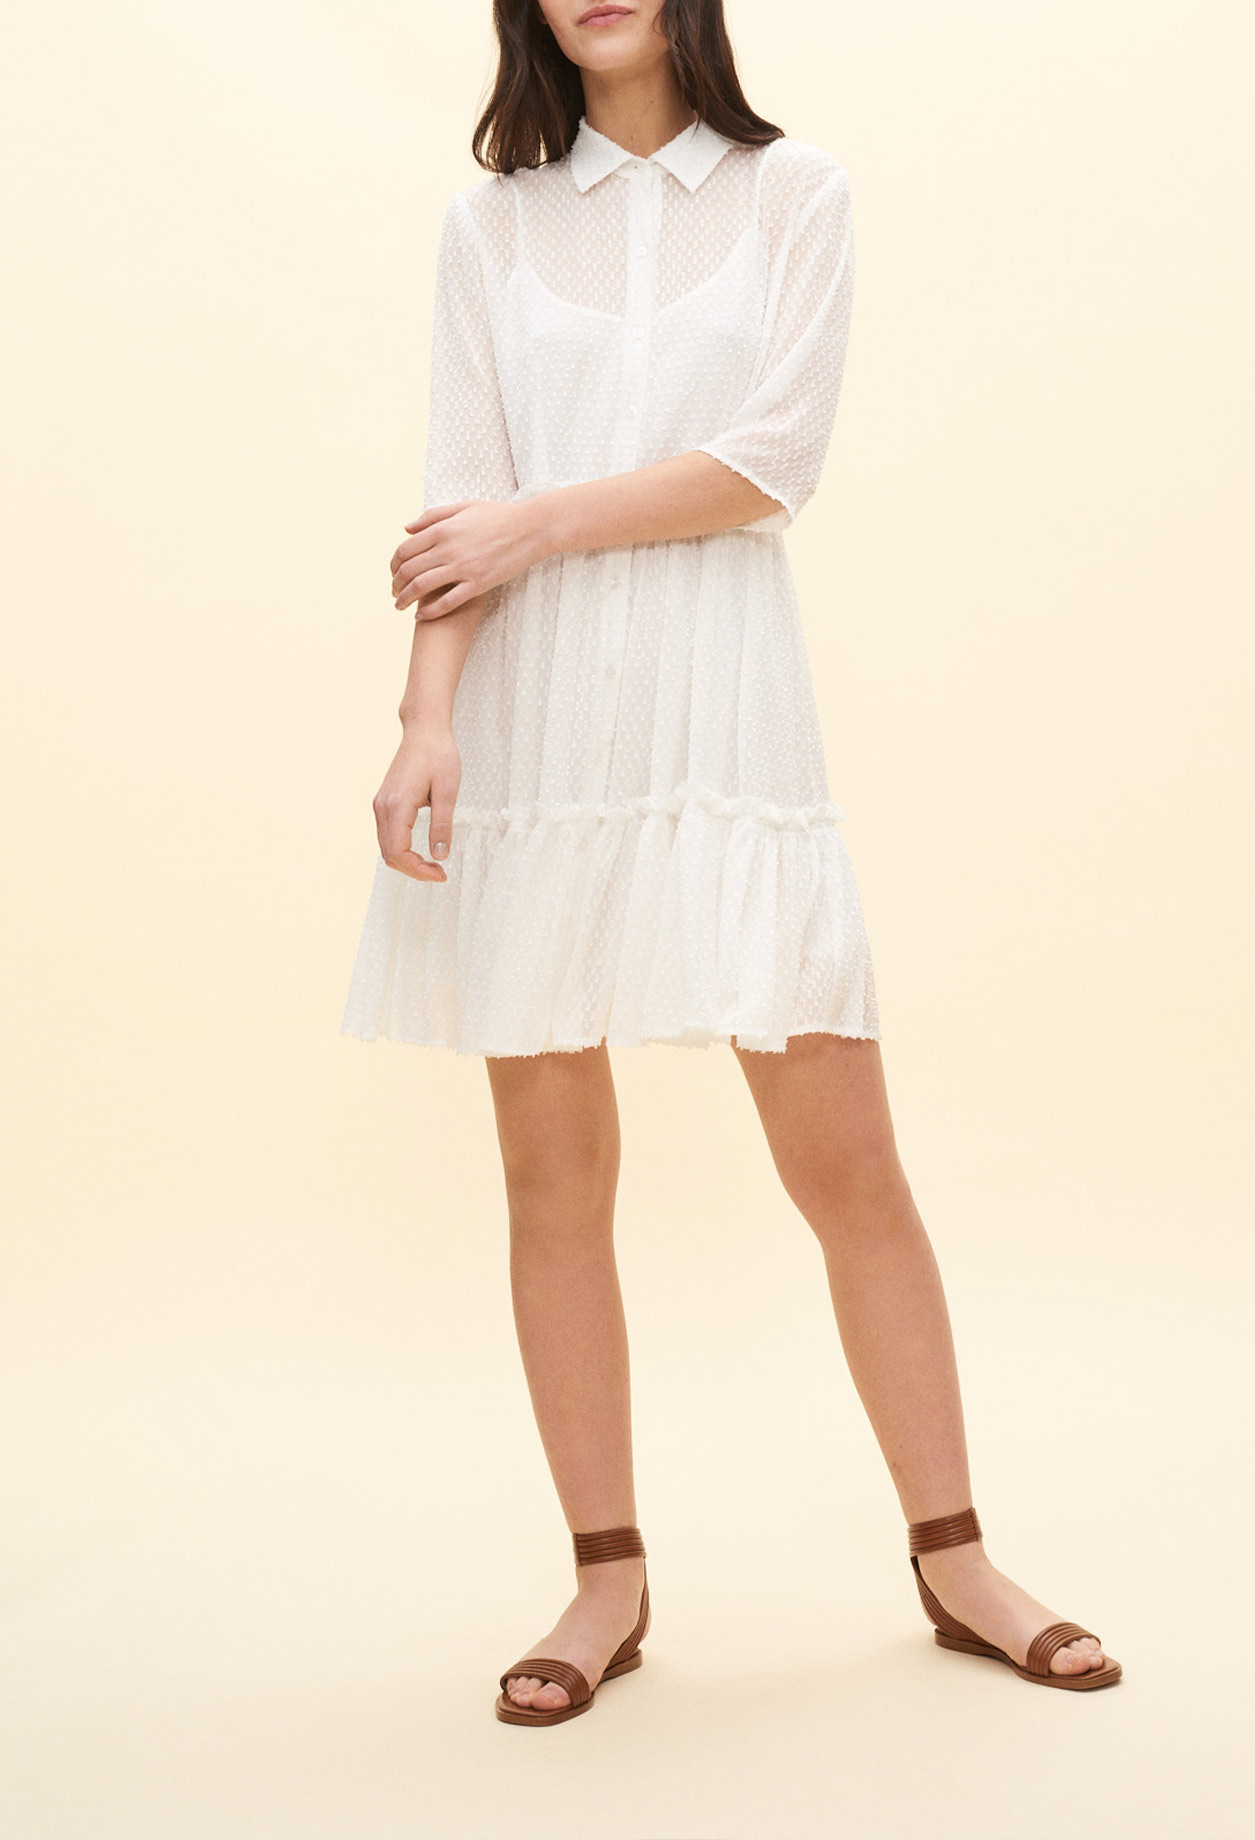 White dotted Swiss shirt dress